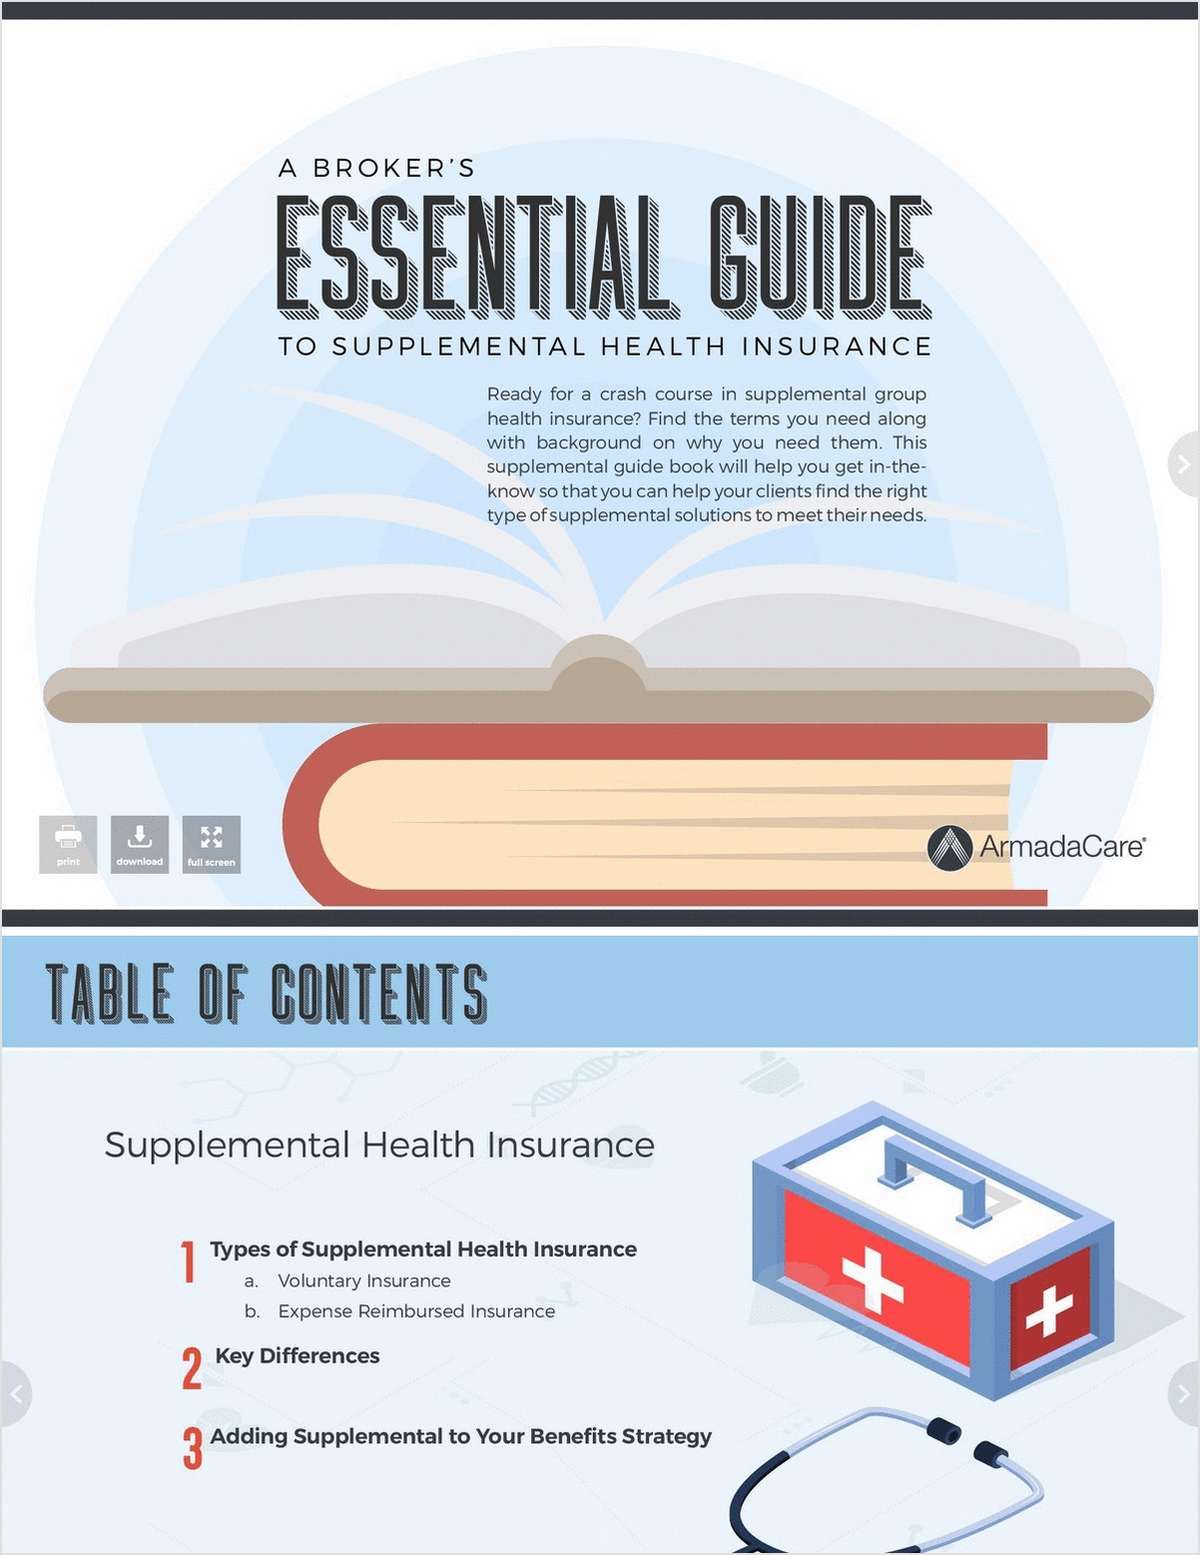 A Broker's Essential Guide to Supplemental Health Insurance